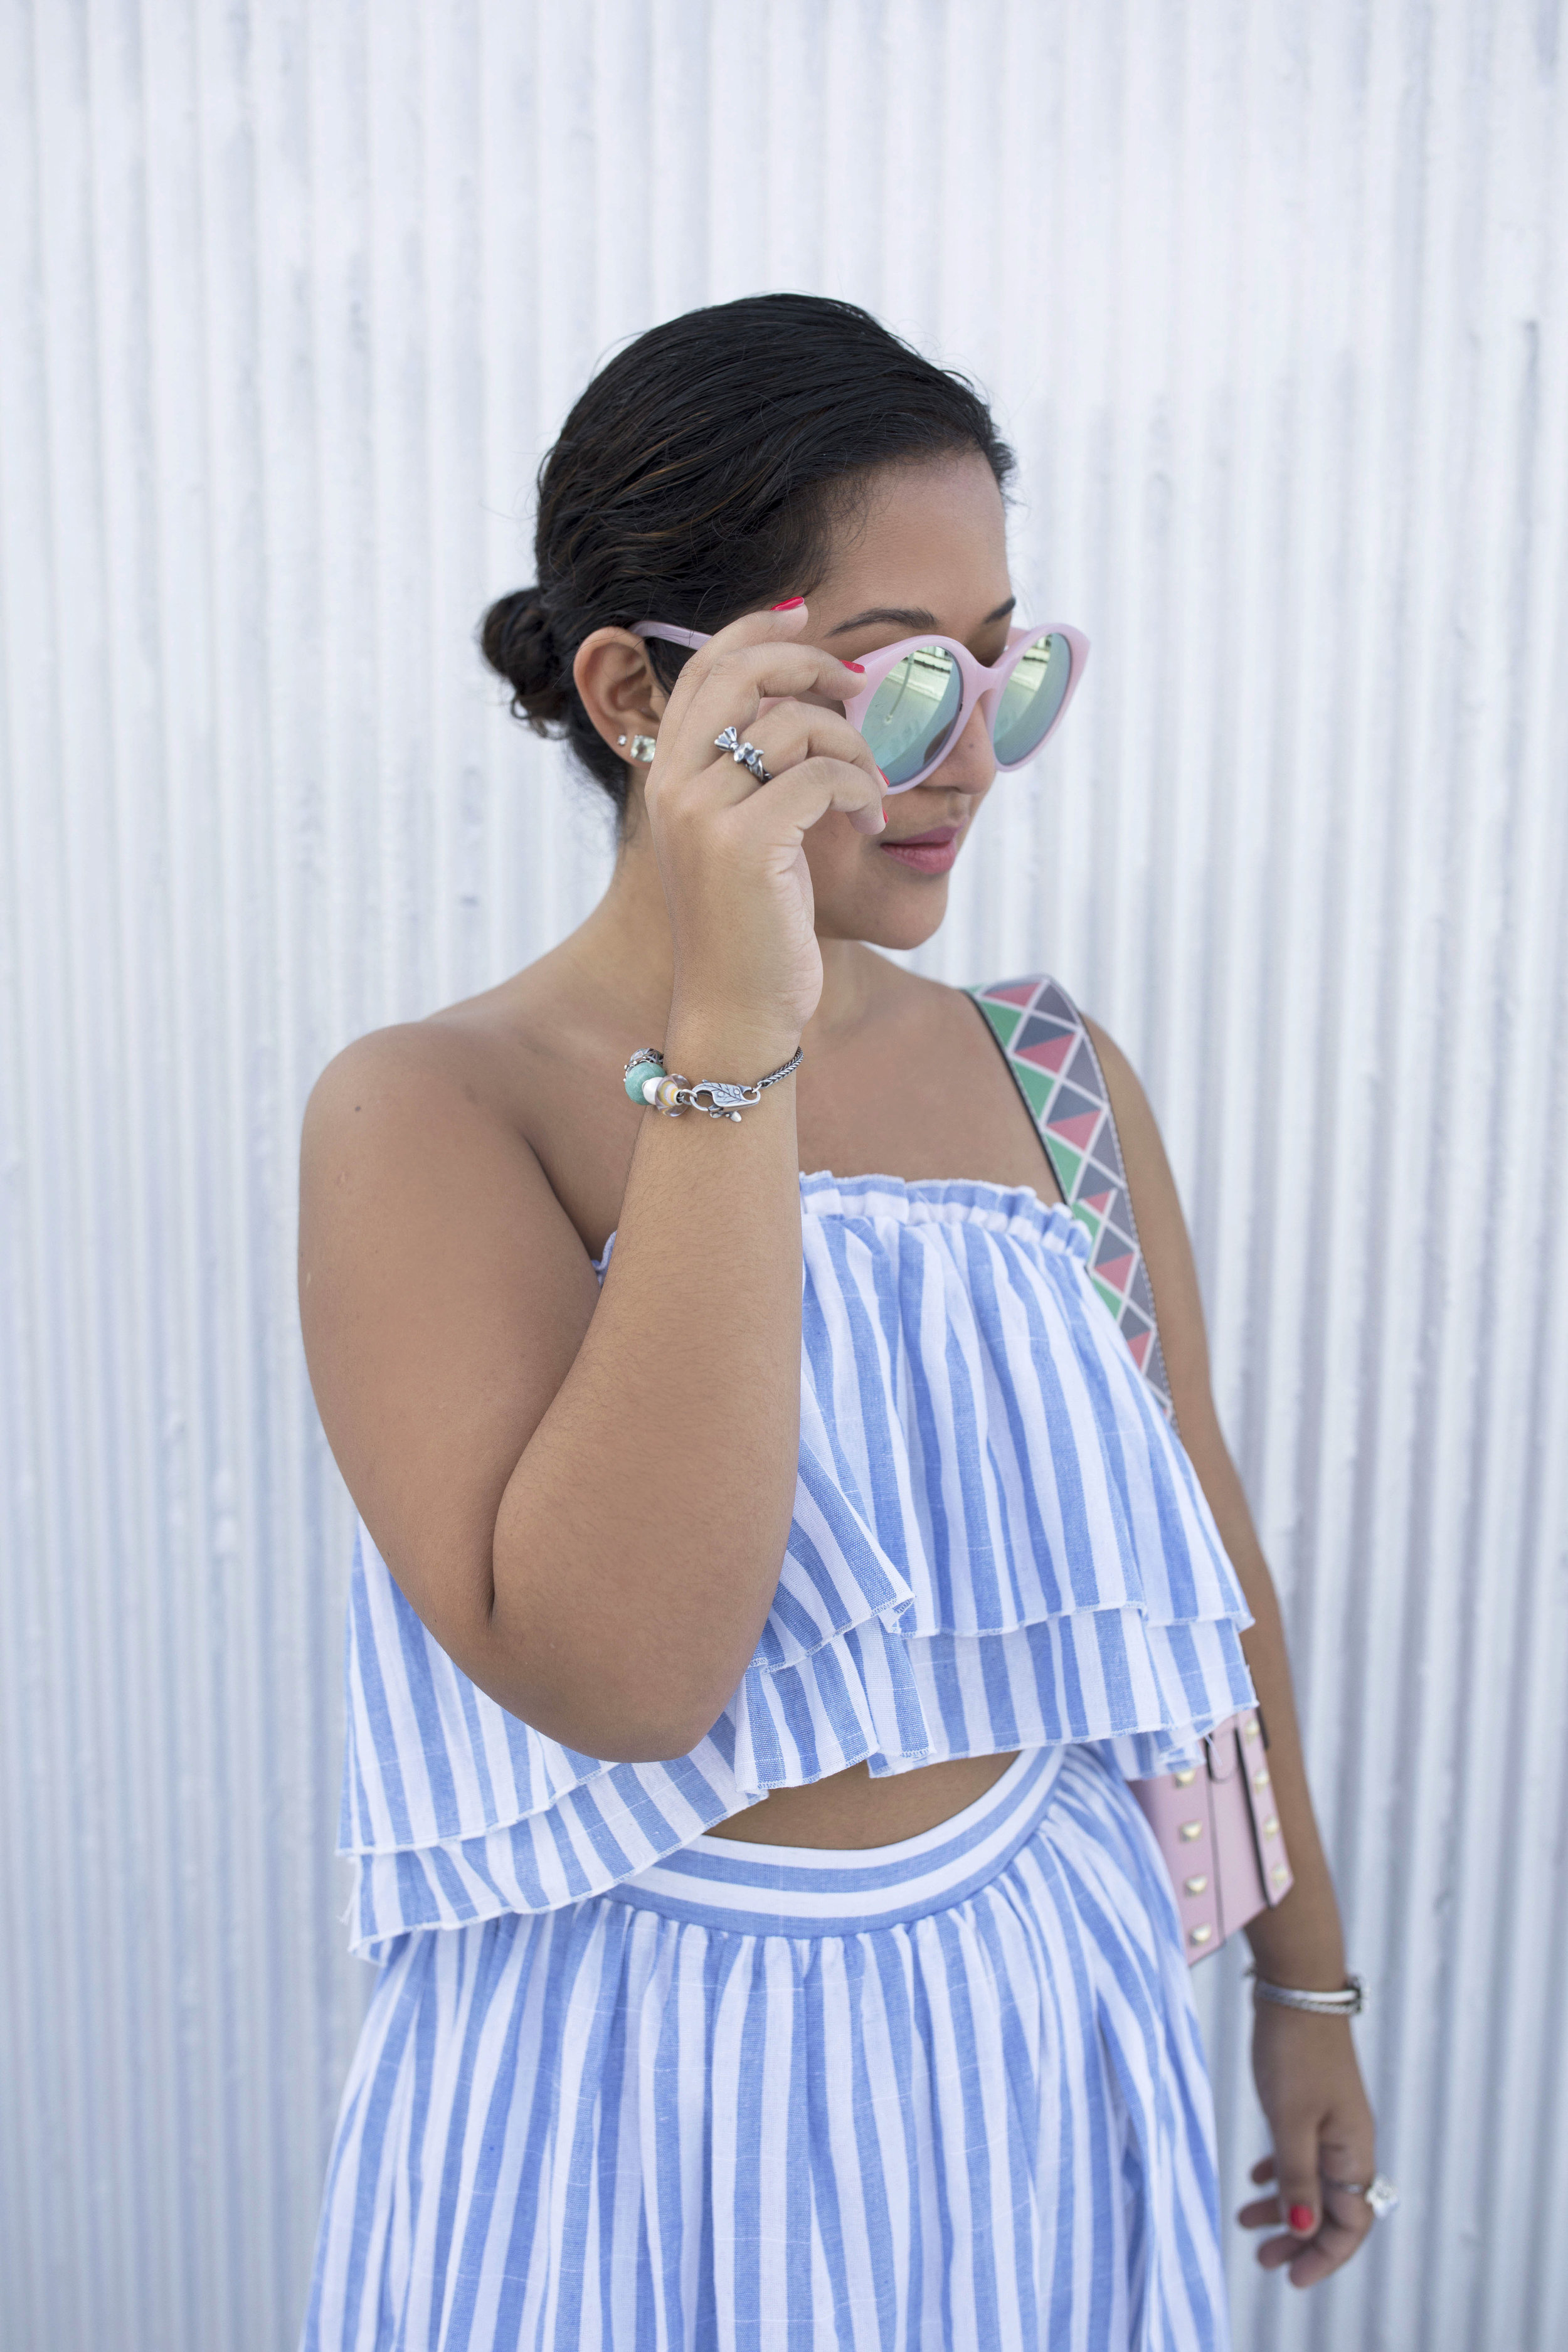 Krity S x SheIn x 2 piece stripped set5.jpg